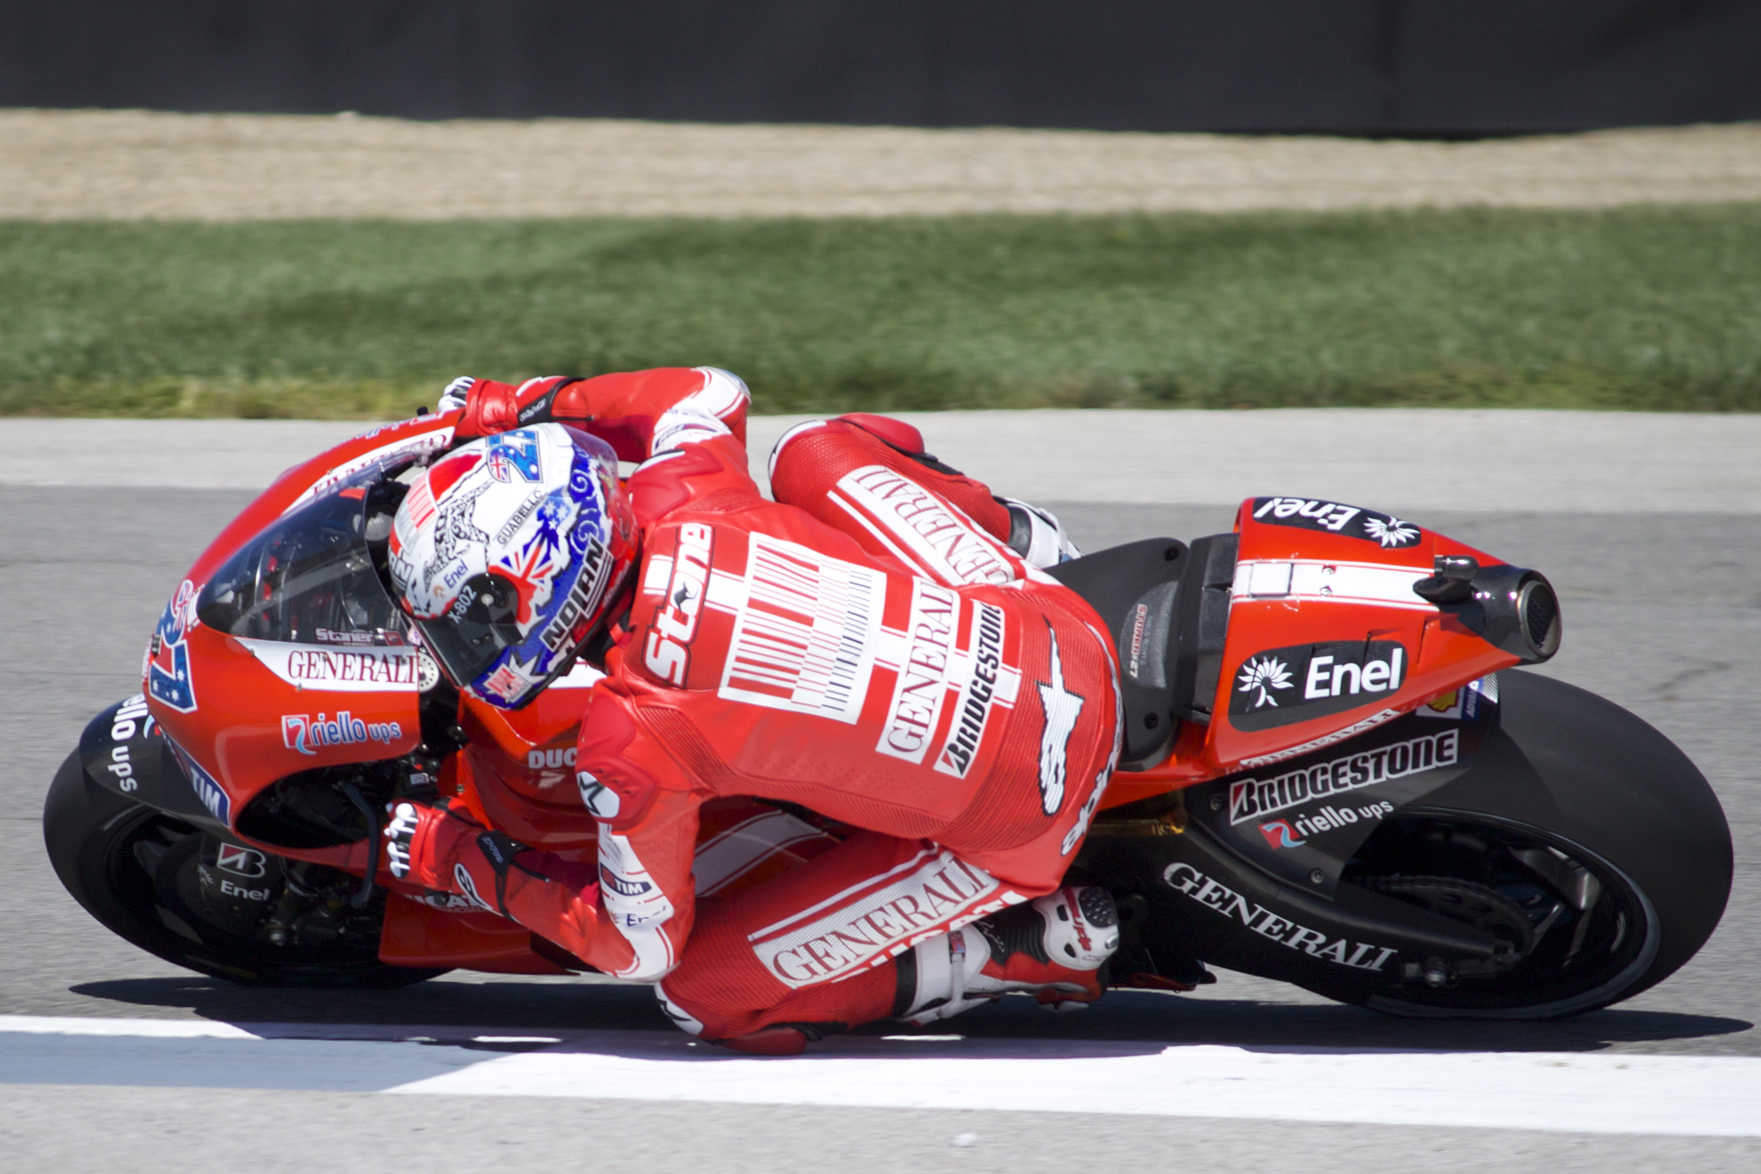 Top 10 GP riders of all time